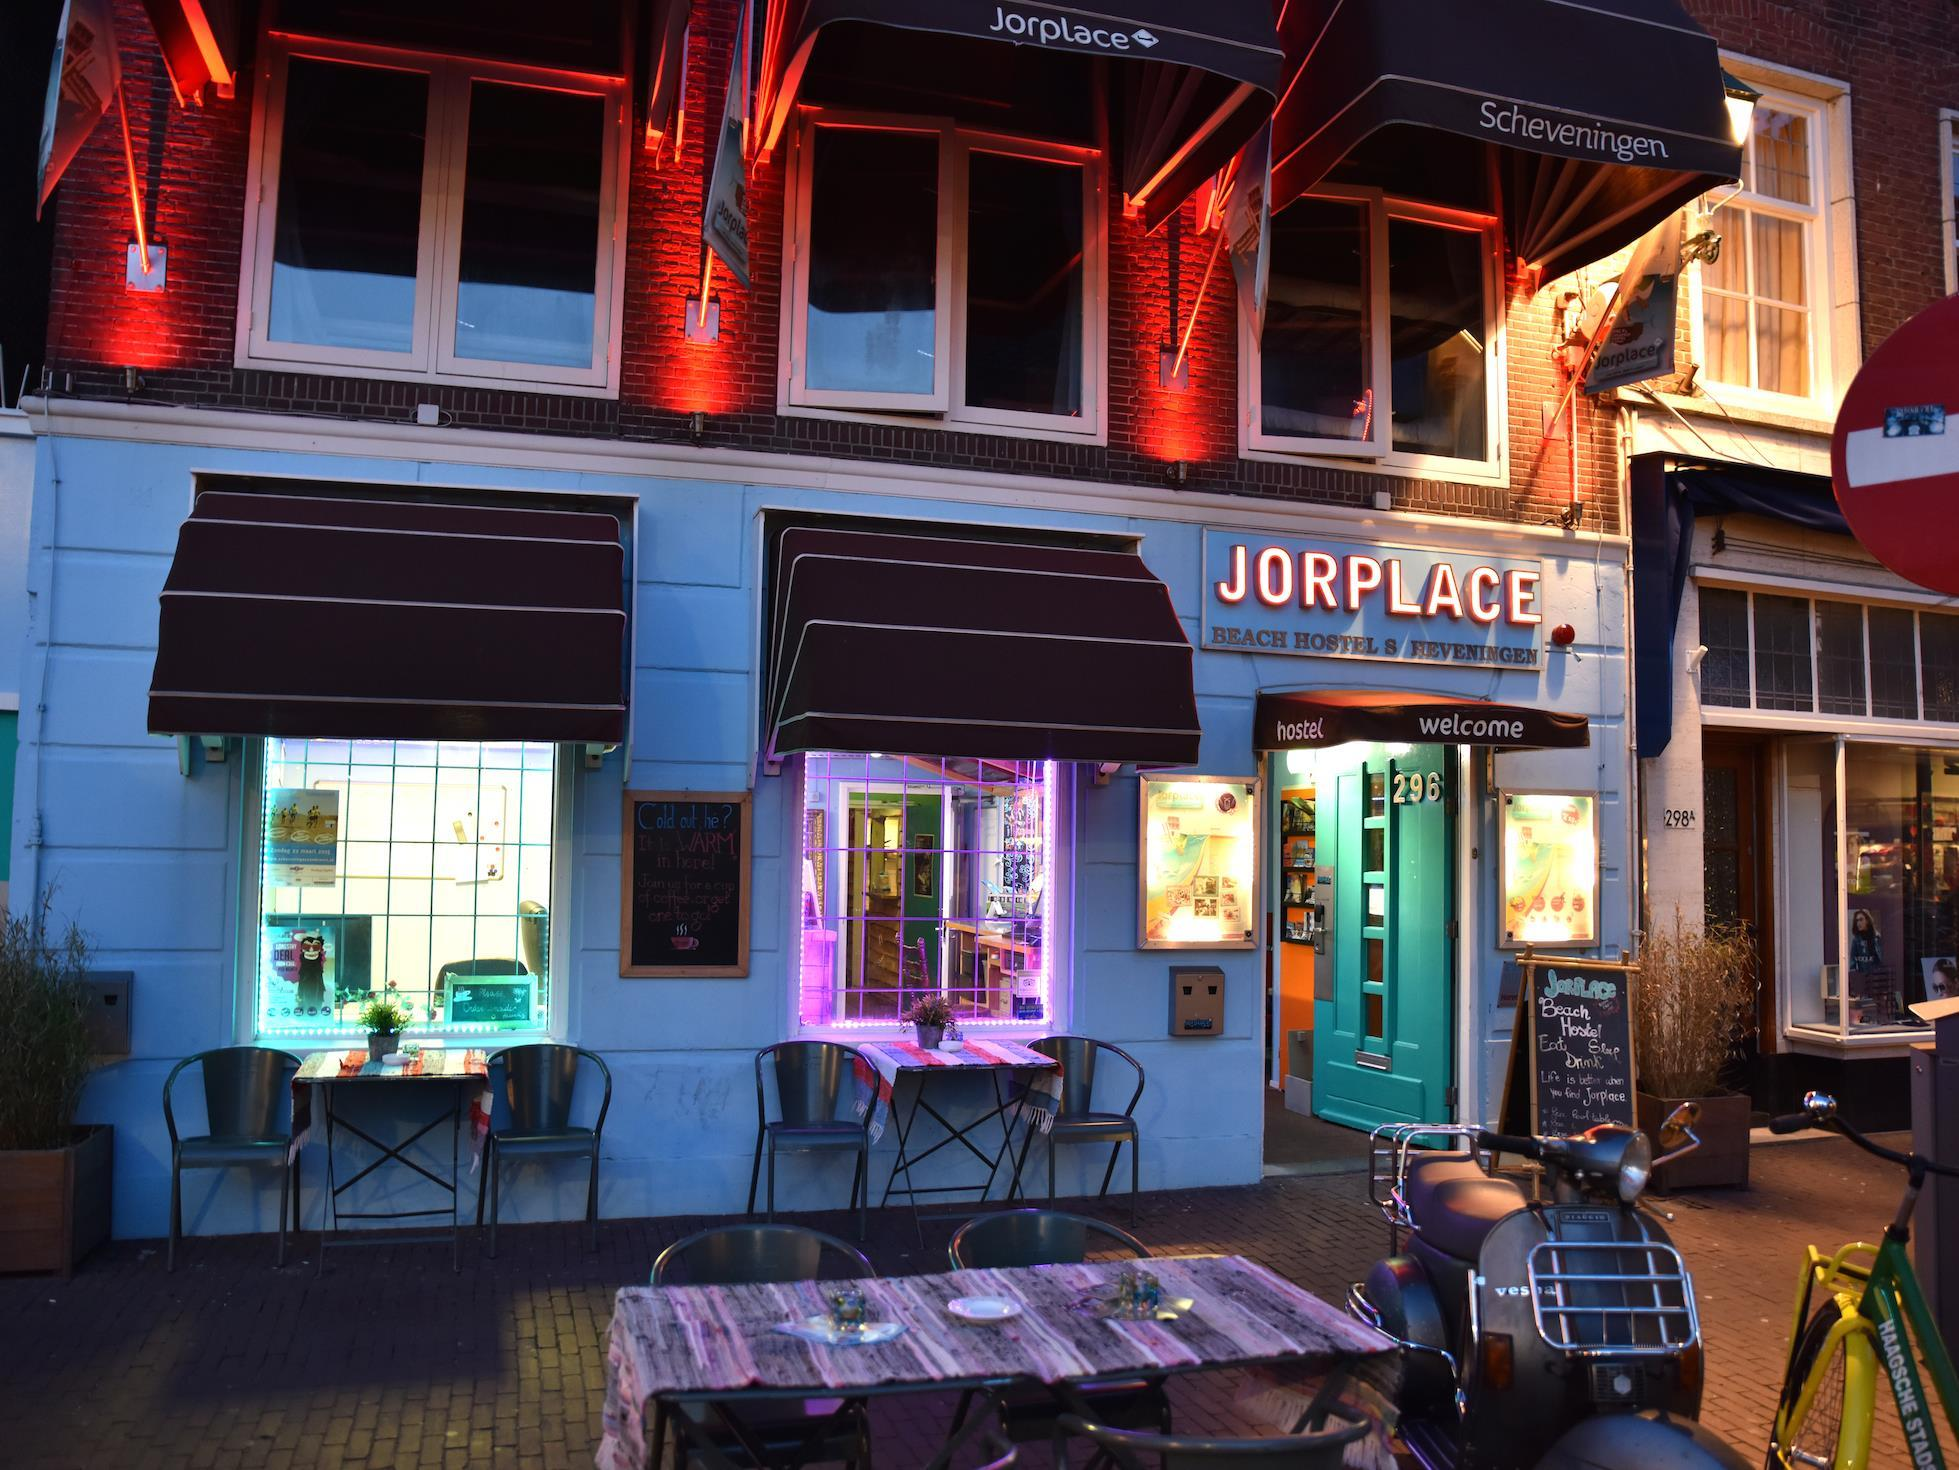 Keuken Binckhorst Best Price On Jorplace Beach Hostel In The Hague Reviews